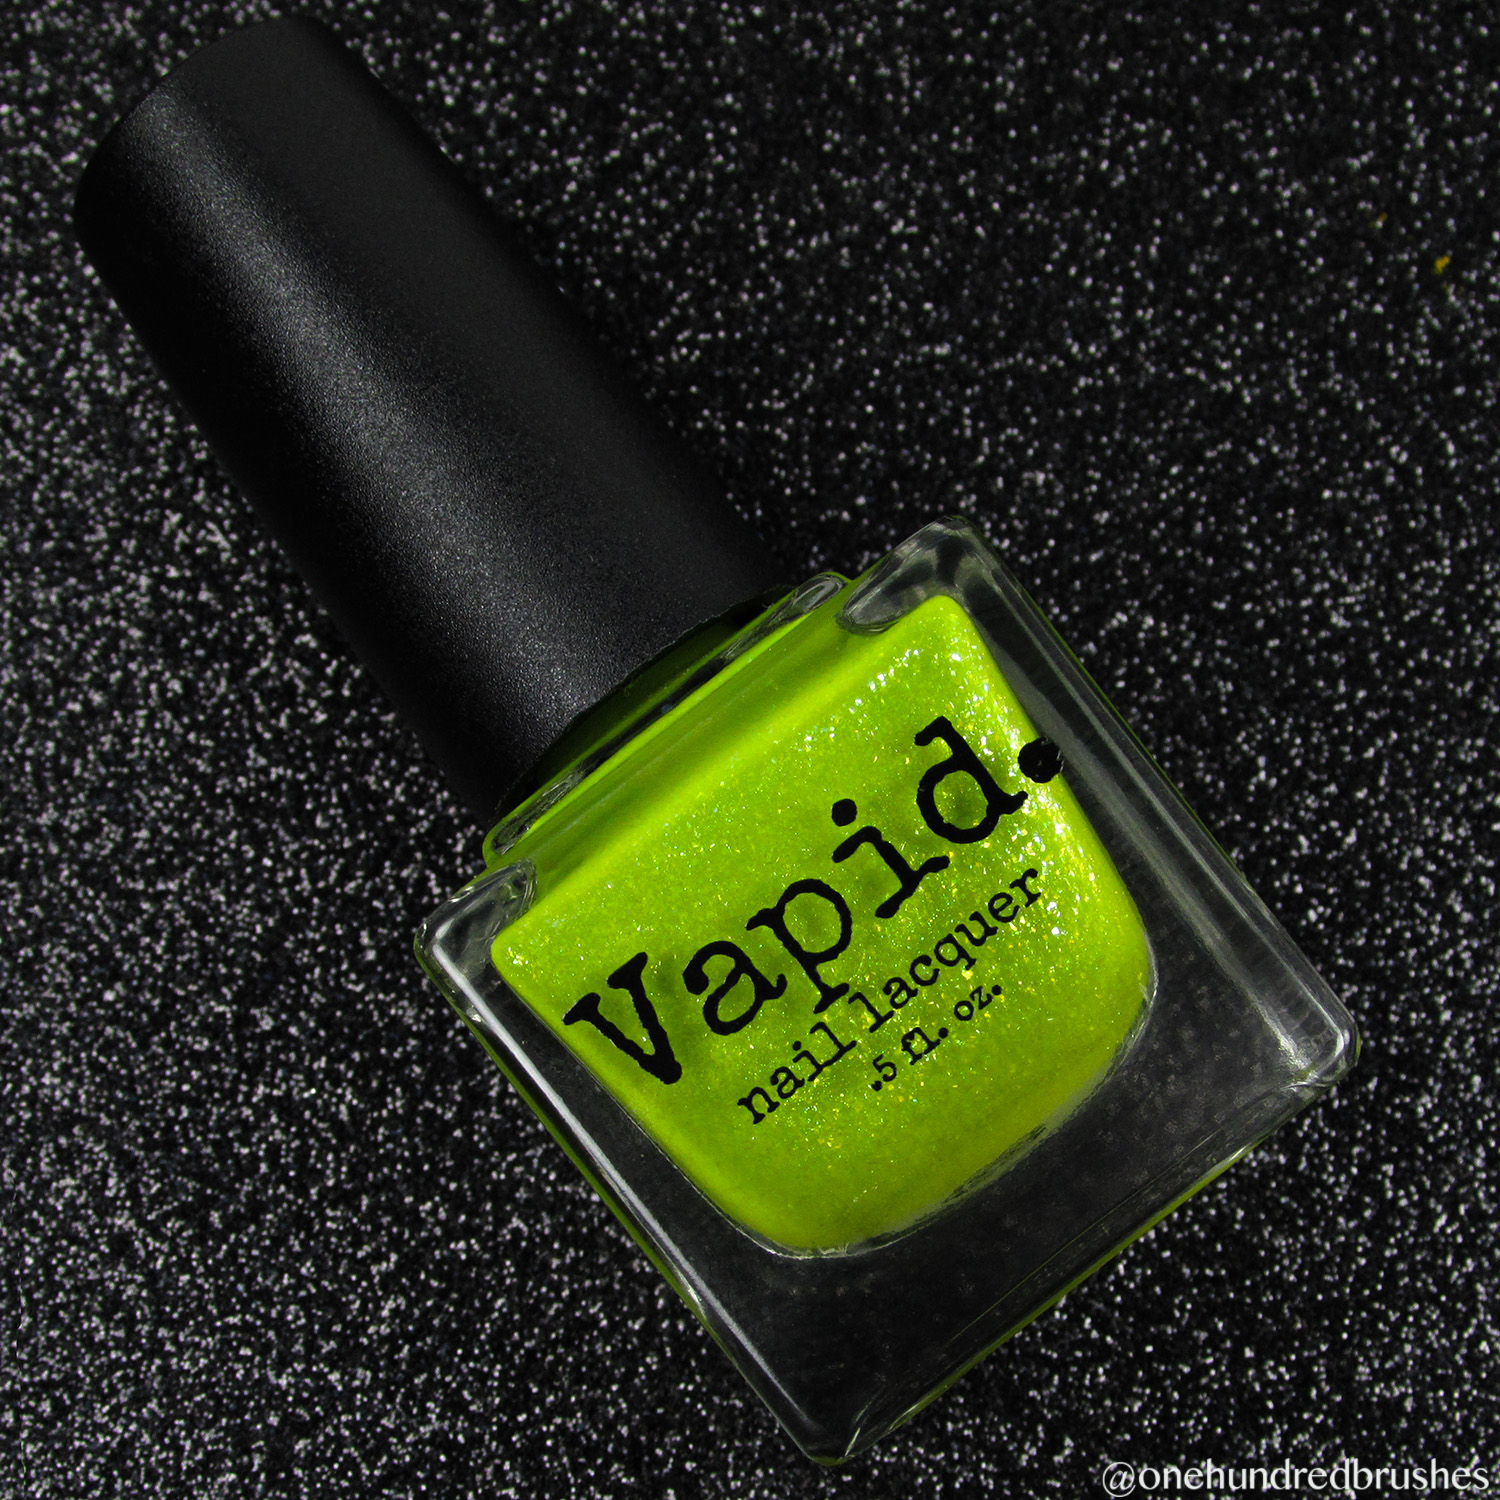 Venus Fly Trap - bottle - Vapid Lacquer - April 2018 - Spring release - yellow - green - chartreuse - yellow shimmer